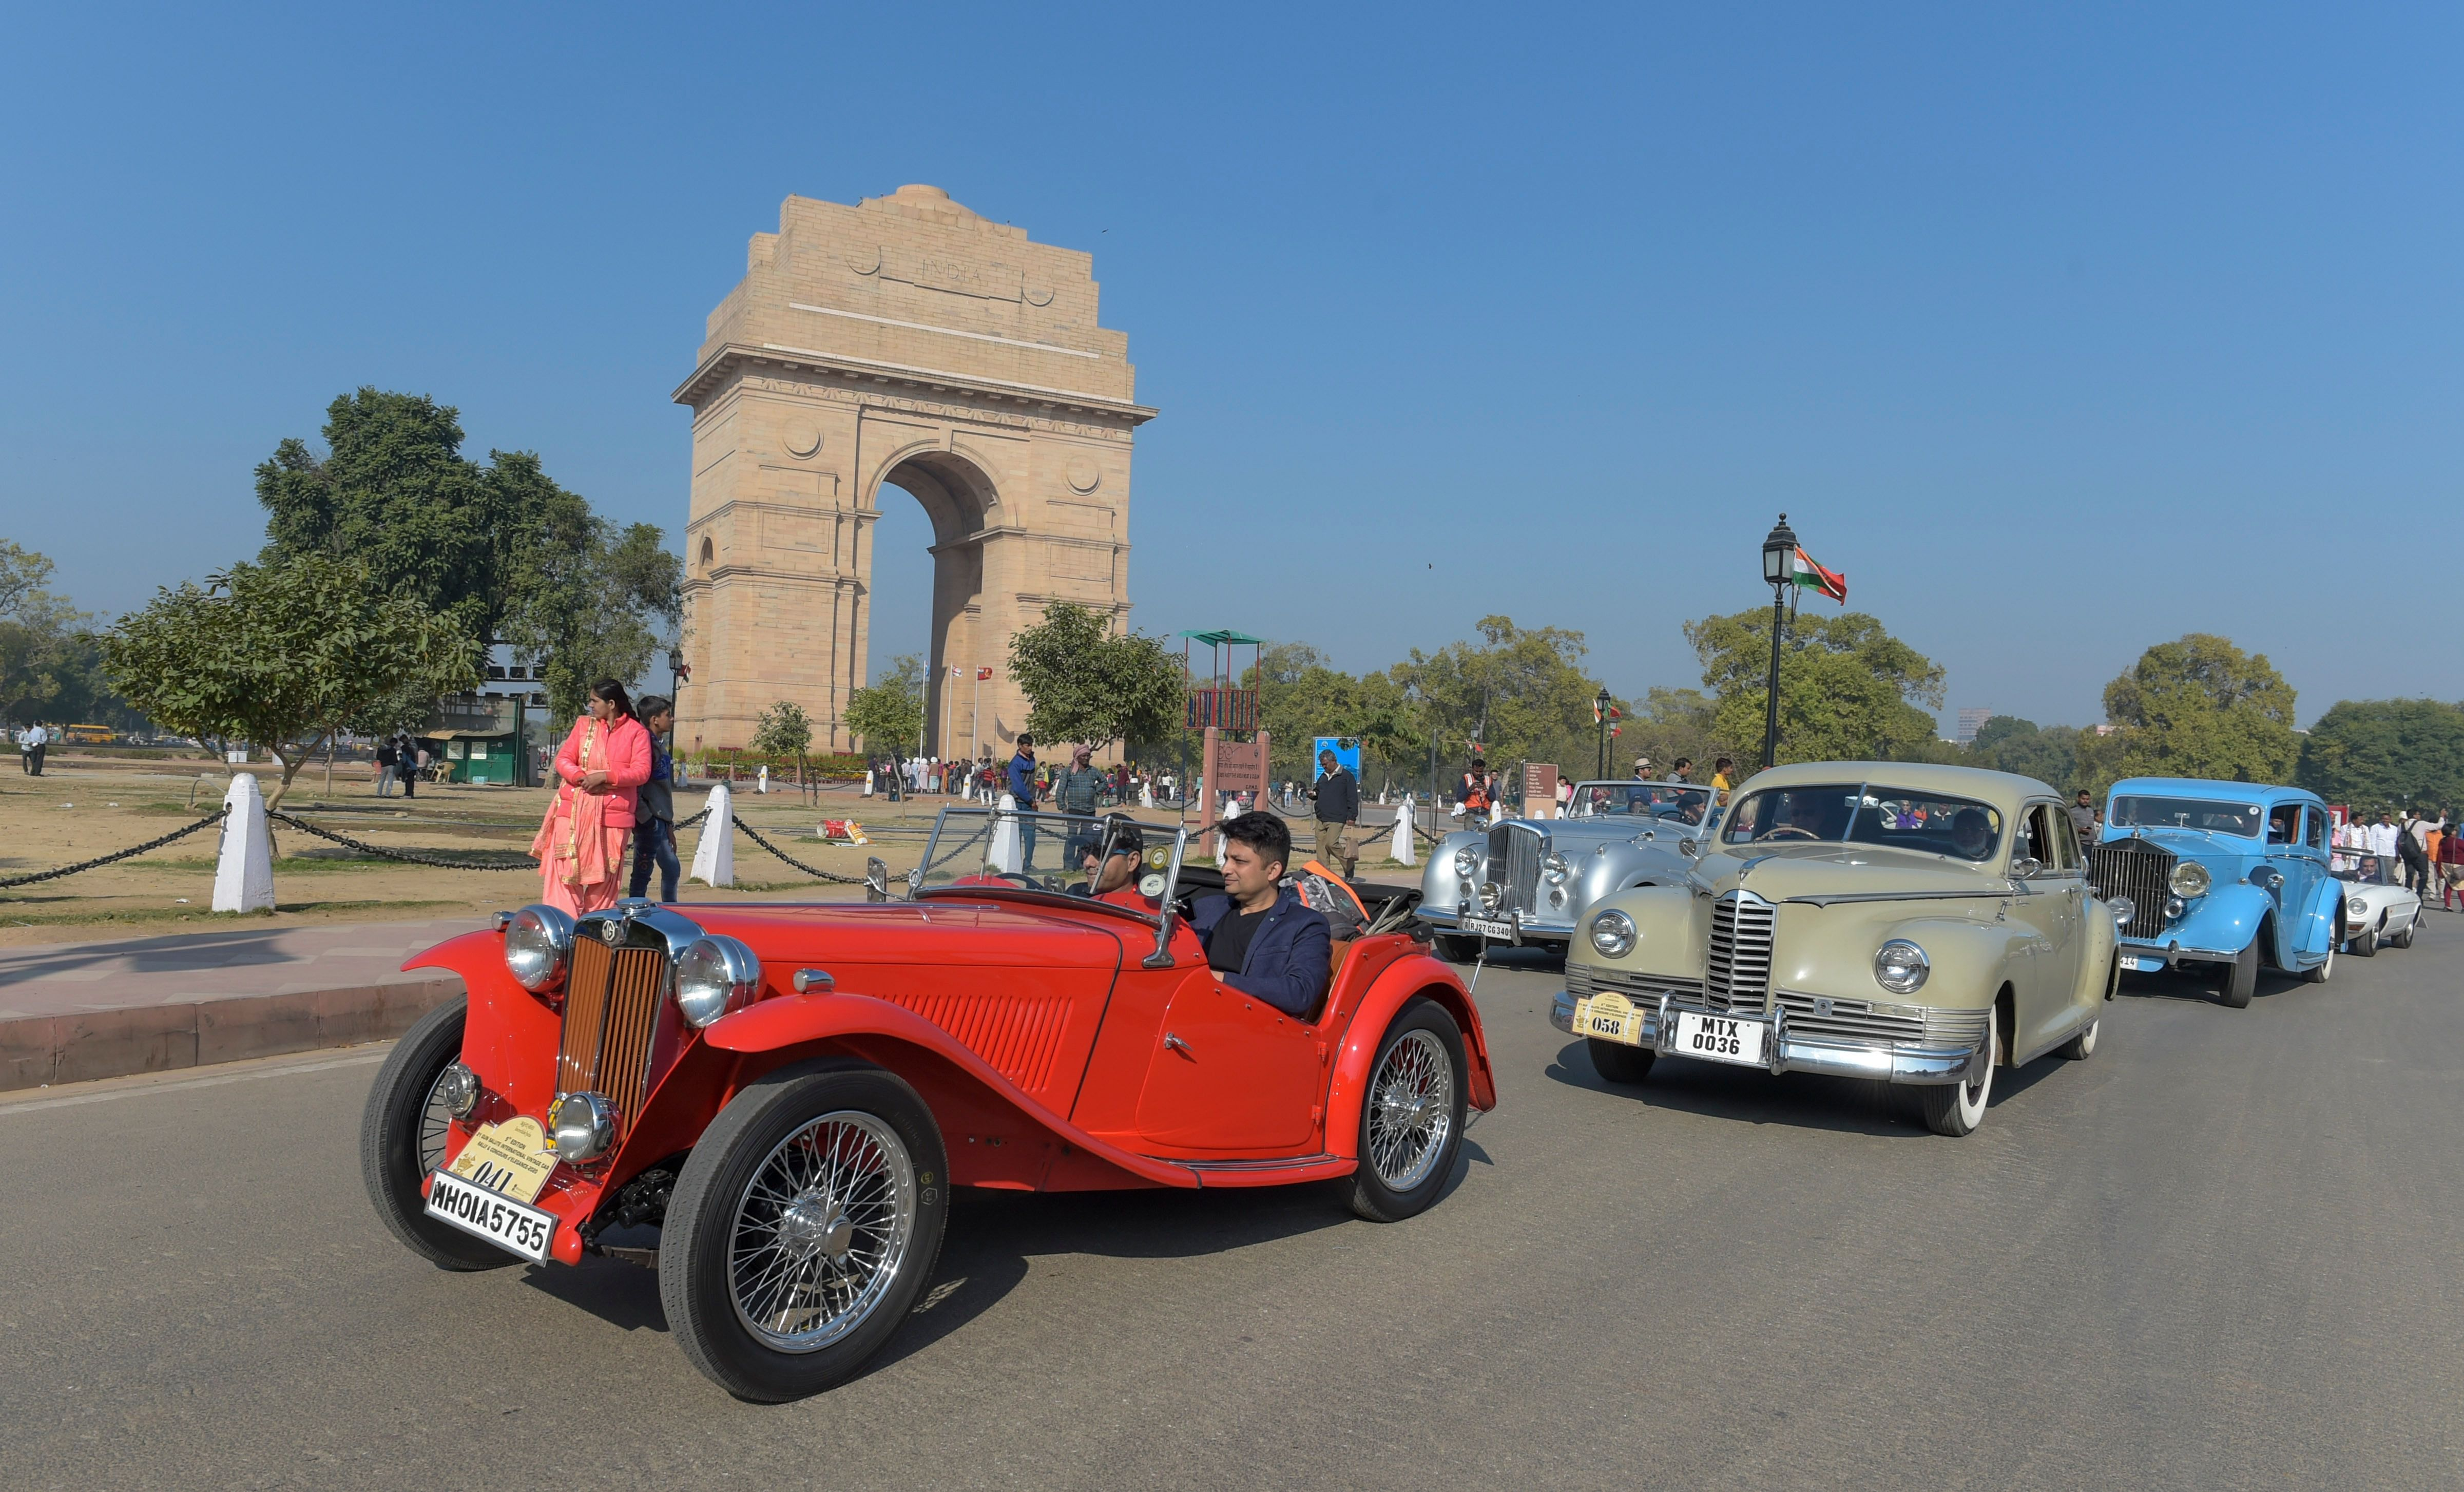 Participants drive the 1932 MG J2 followed by other vintage cars.